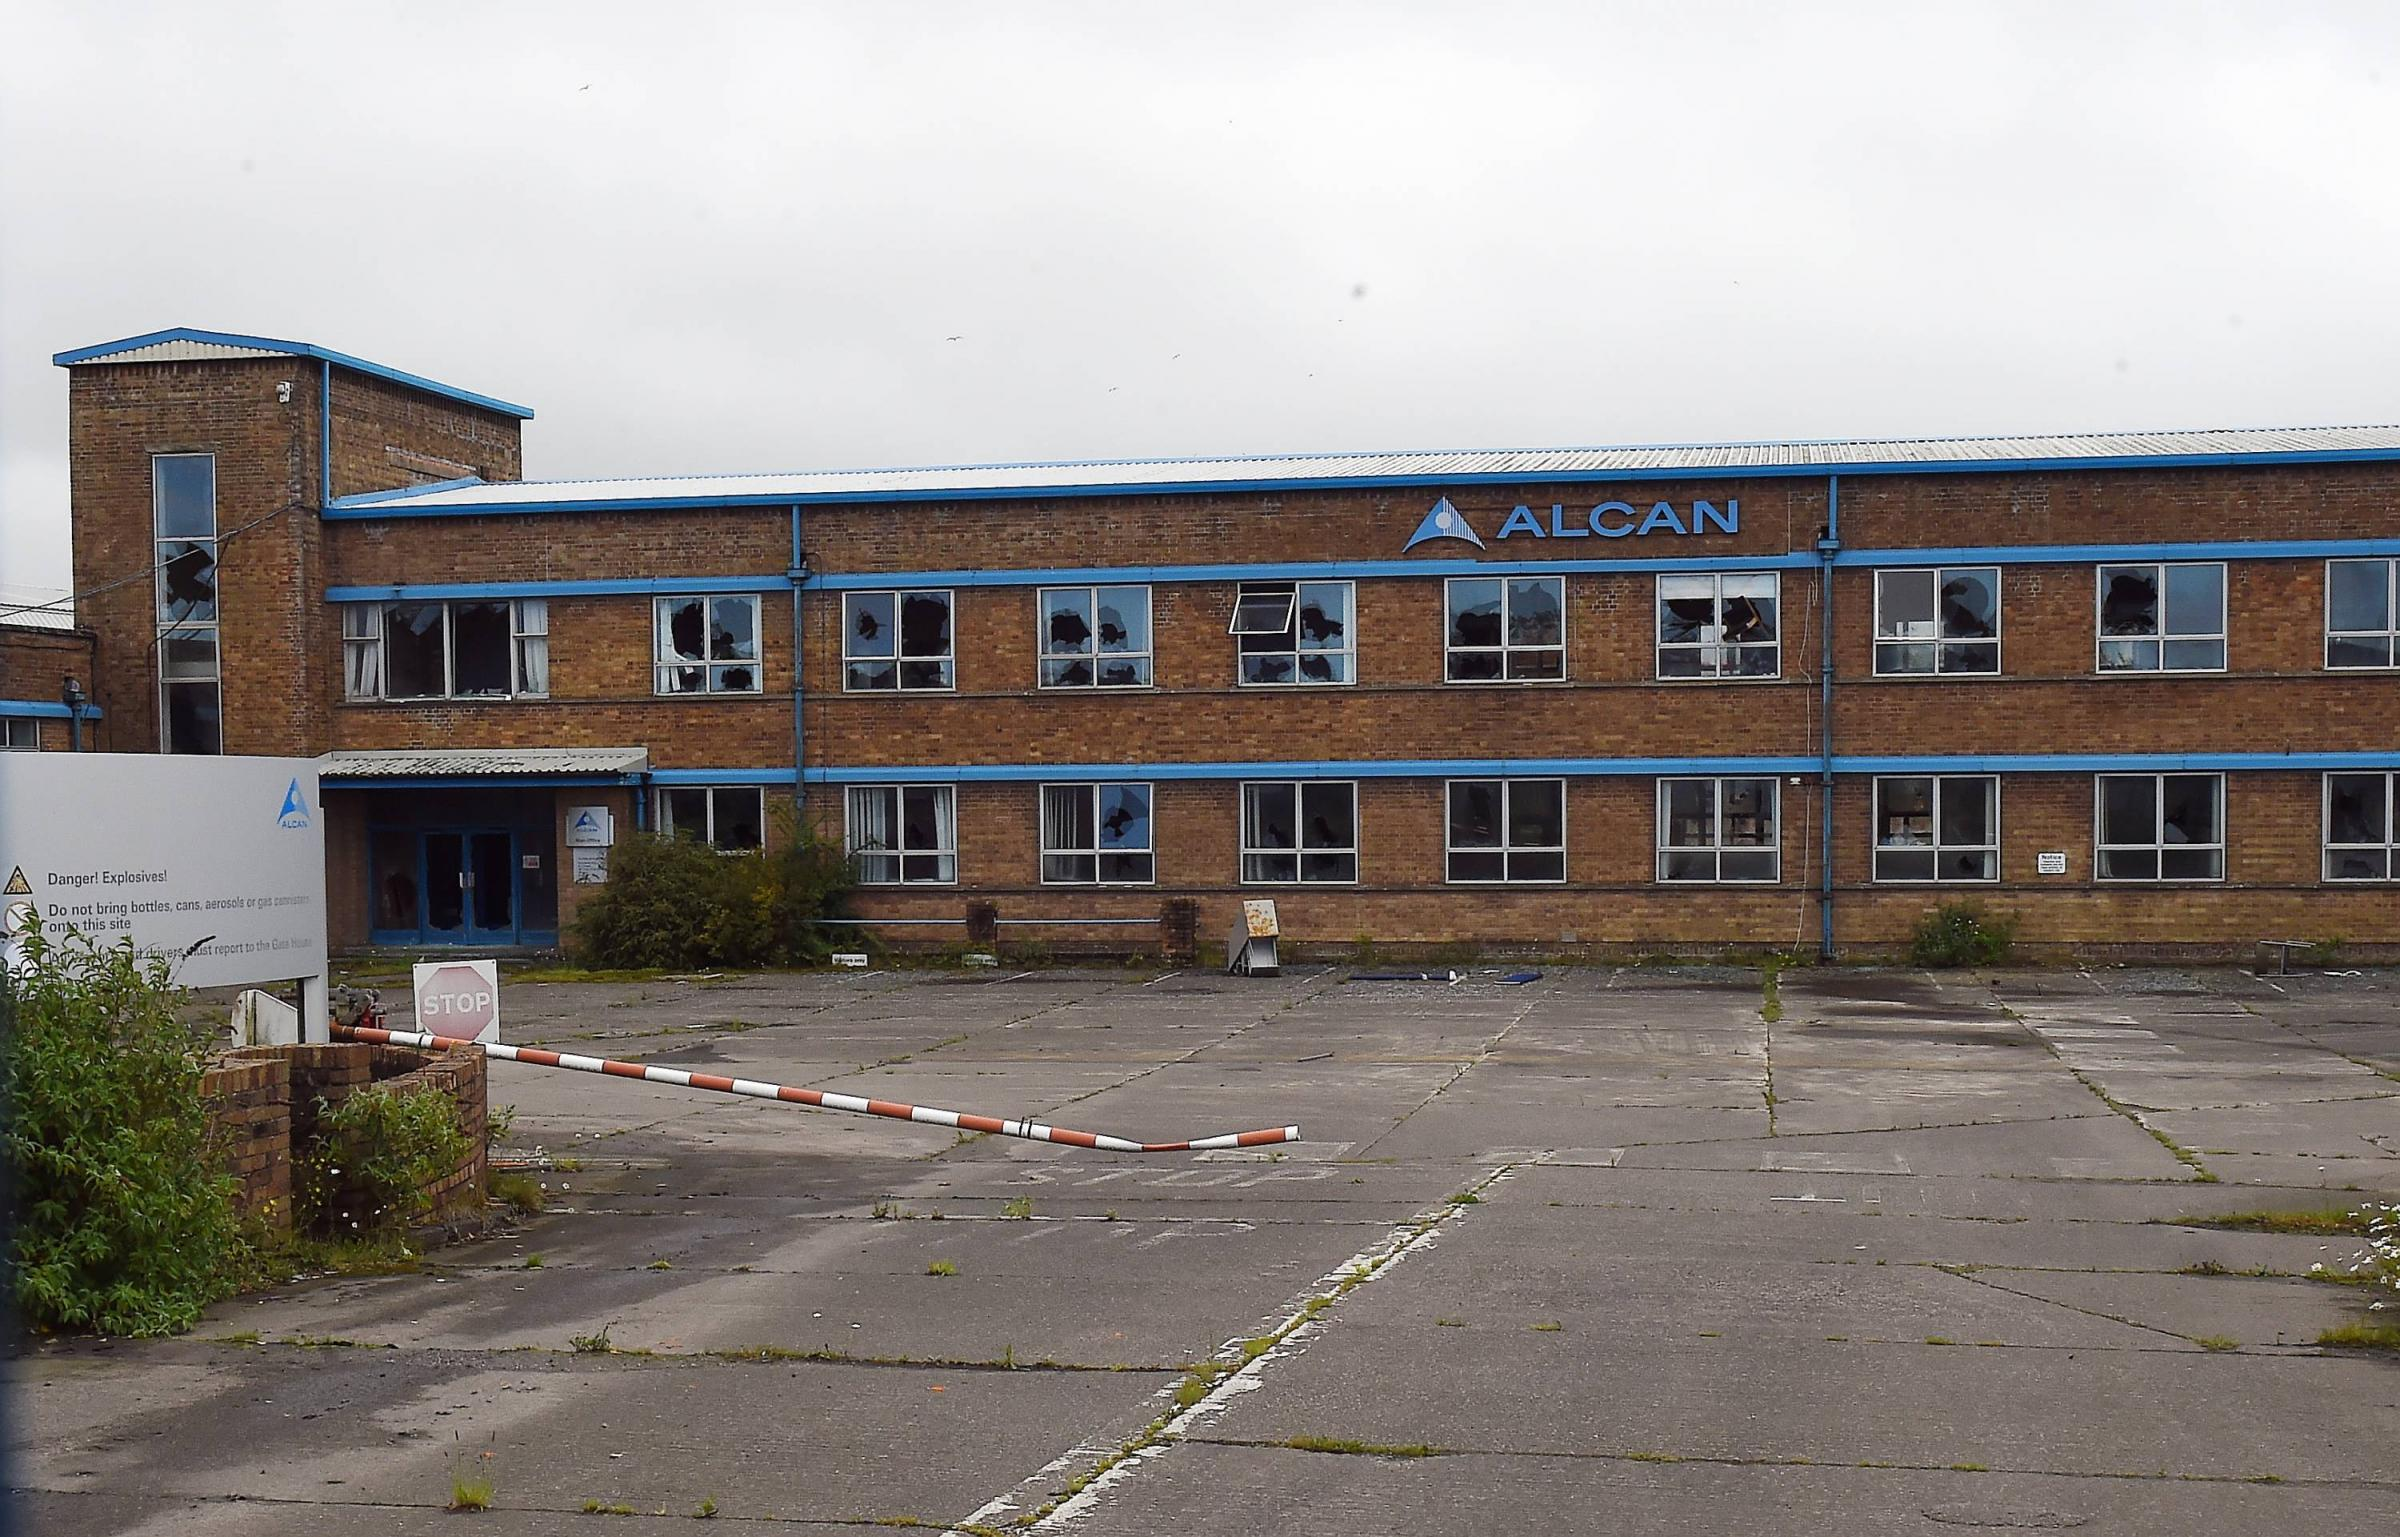 The main building on the Alcan site at Lillyhall, Workington which could be developed. Picture: John Story June 8, 2017